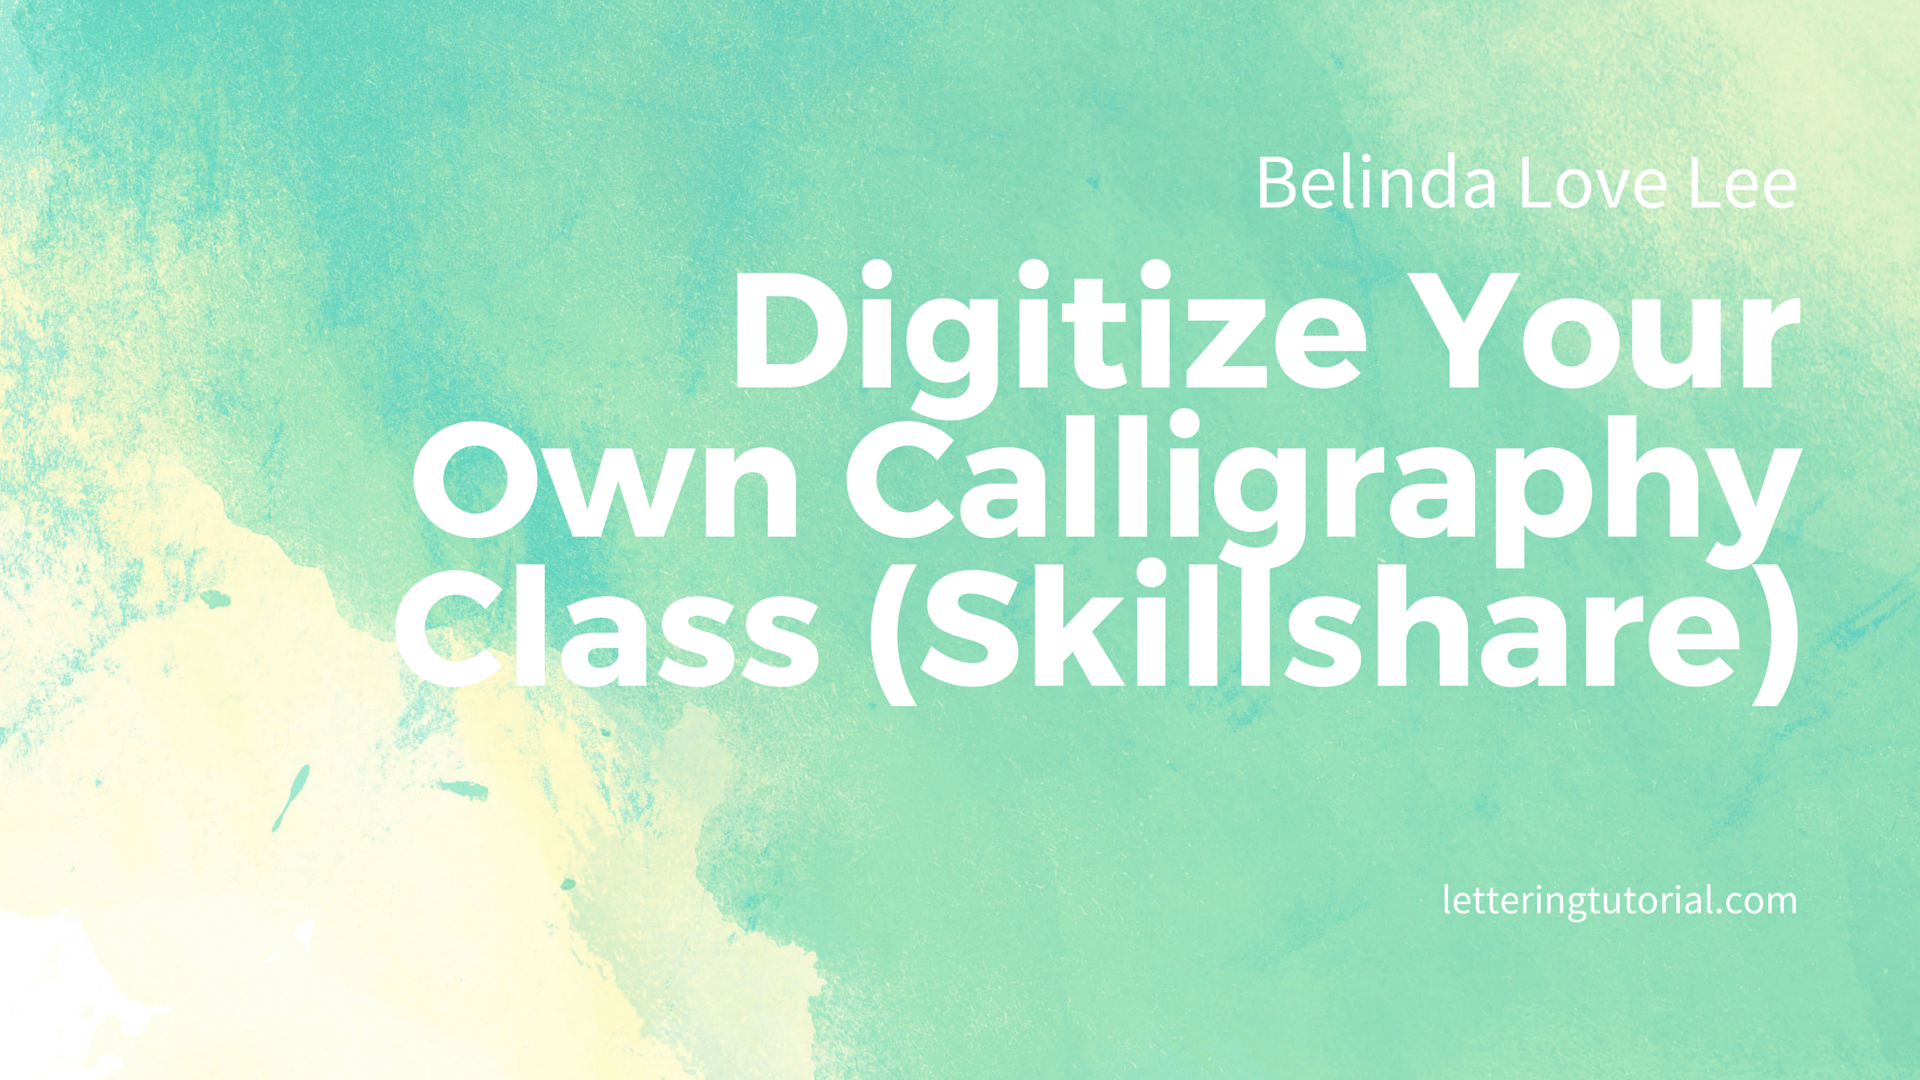 Belinda Love Lee Digitize Your Own Calligraphy Class (Skillshare) - Lettering Tutorial